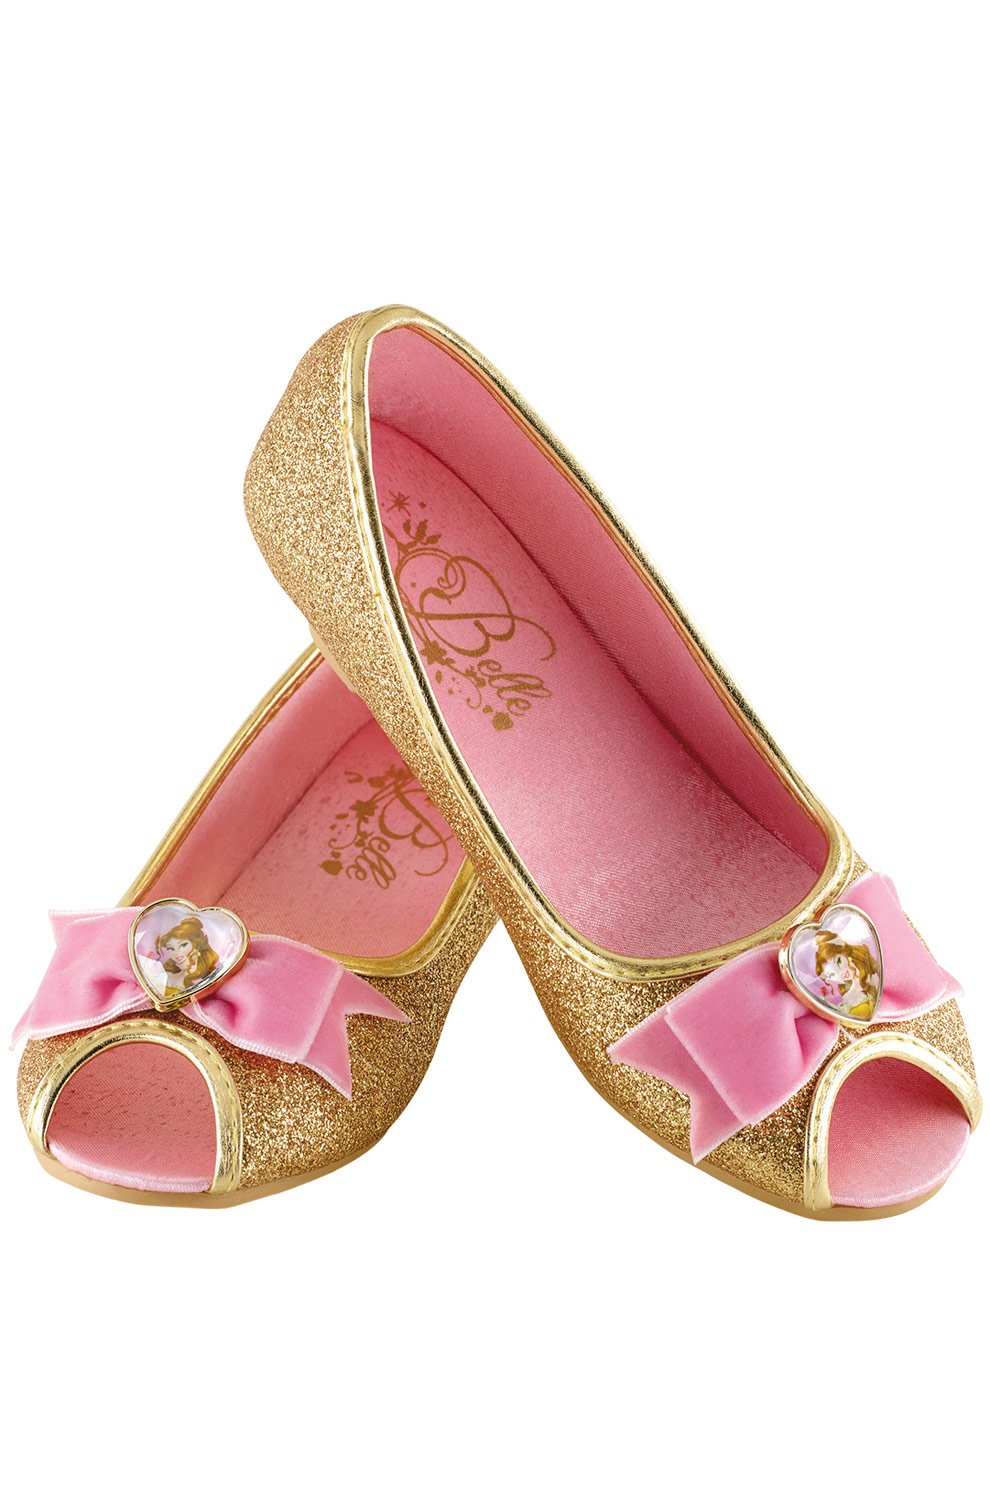 Belle Disney Princess Beauty & The Beast Prestige Shoes, 9/10 Small